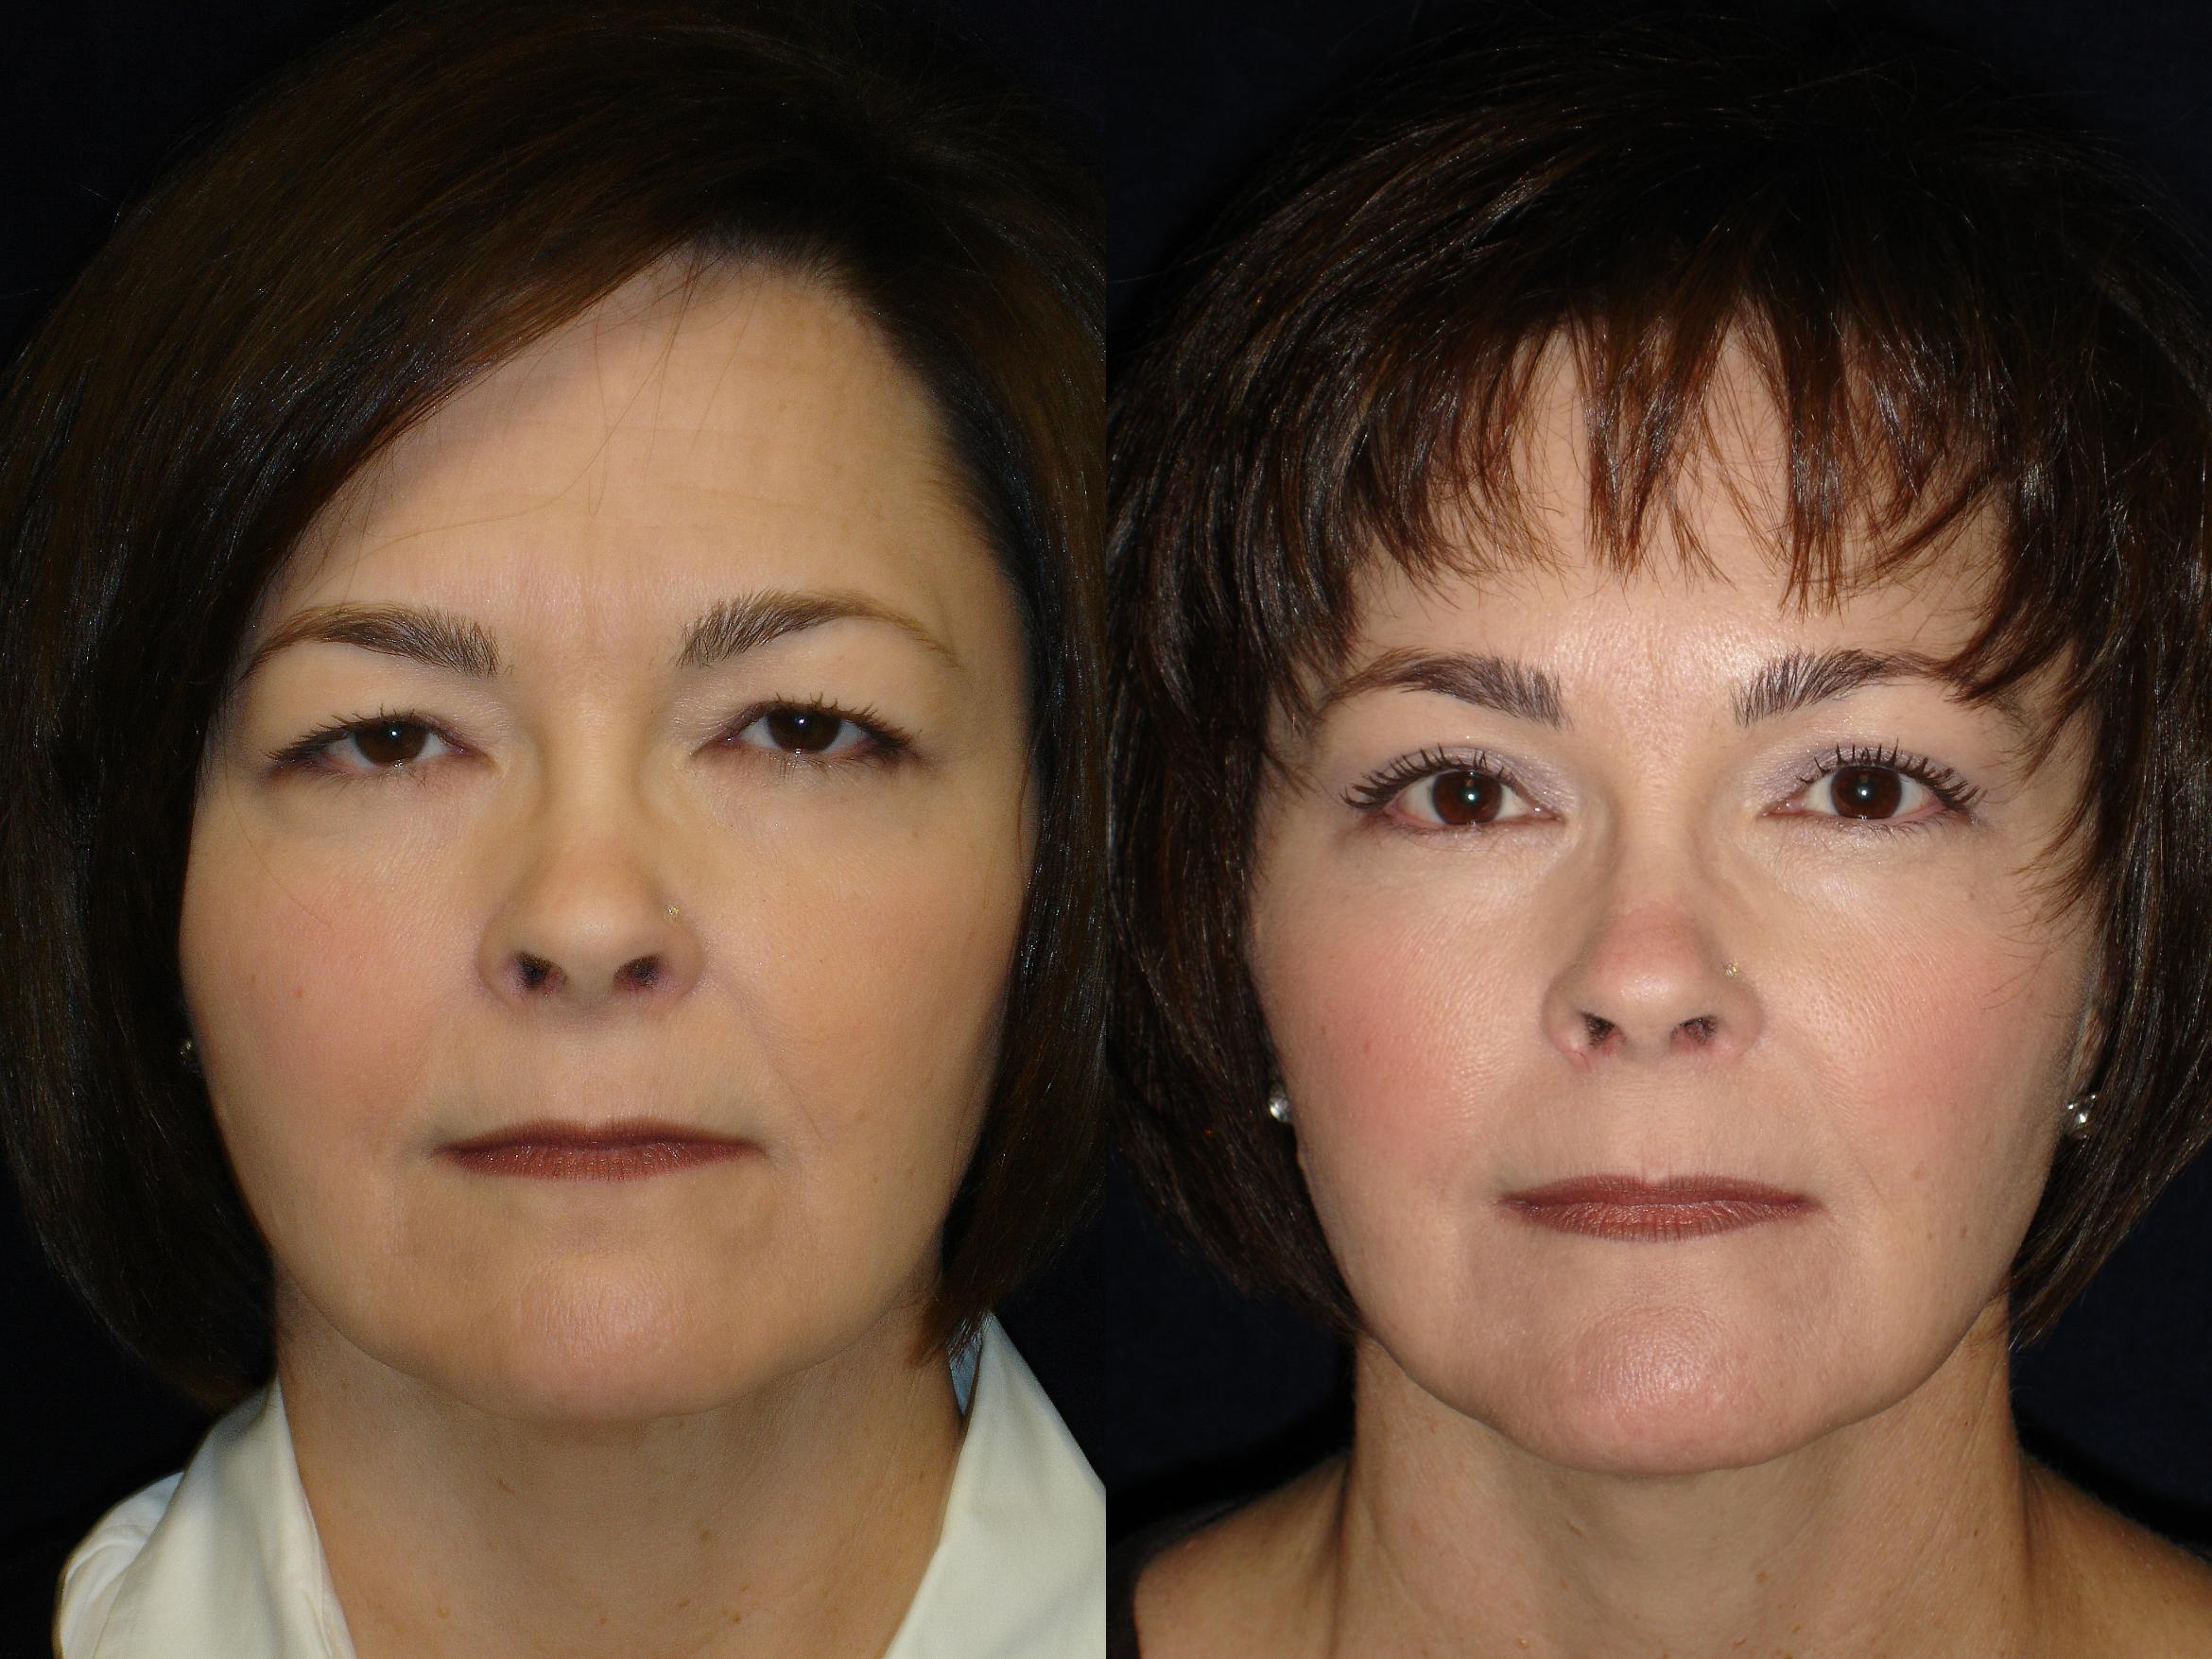 Eyelid Surgery Before & After Photo | San Francisco, CA | Kaiser Permanente Cosmetic Services